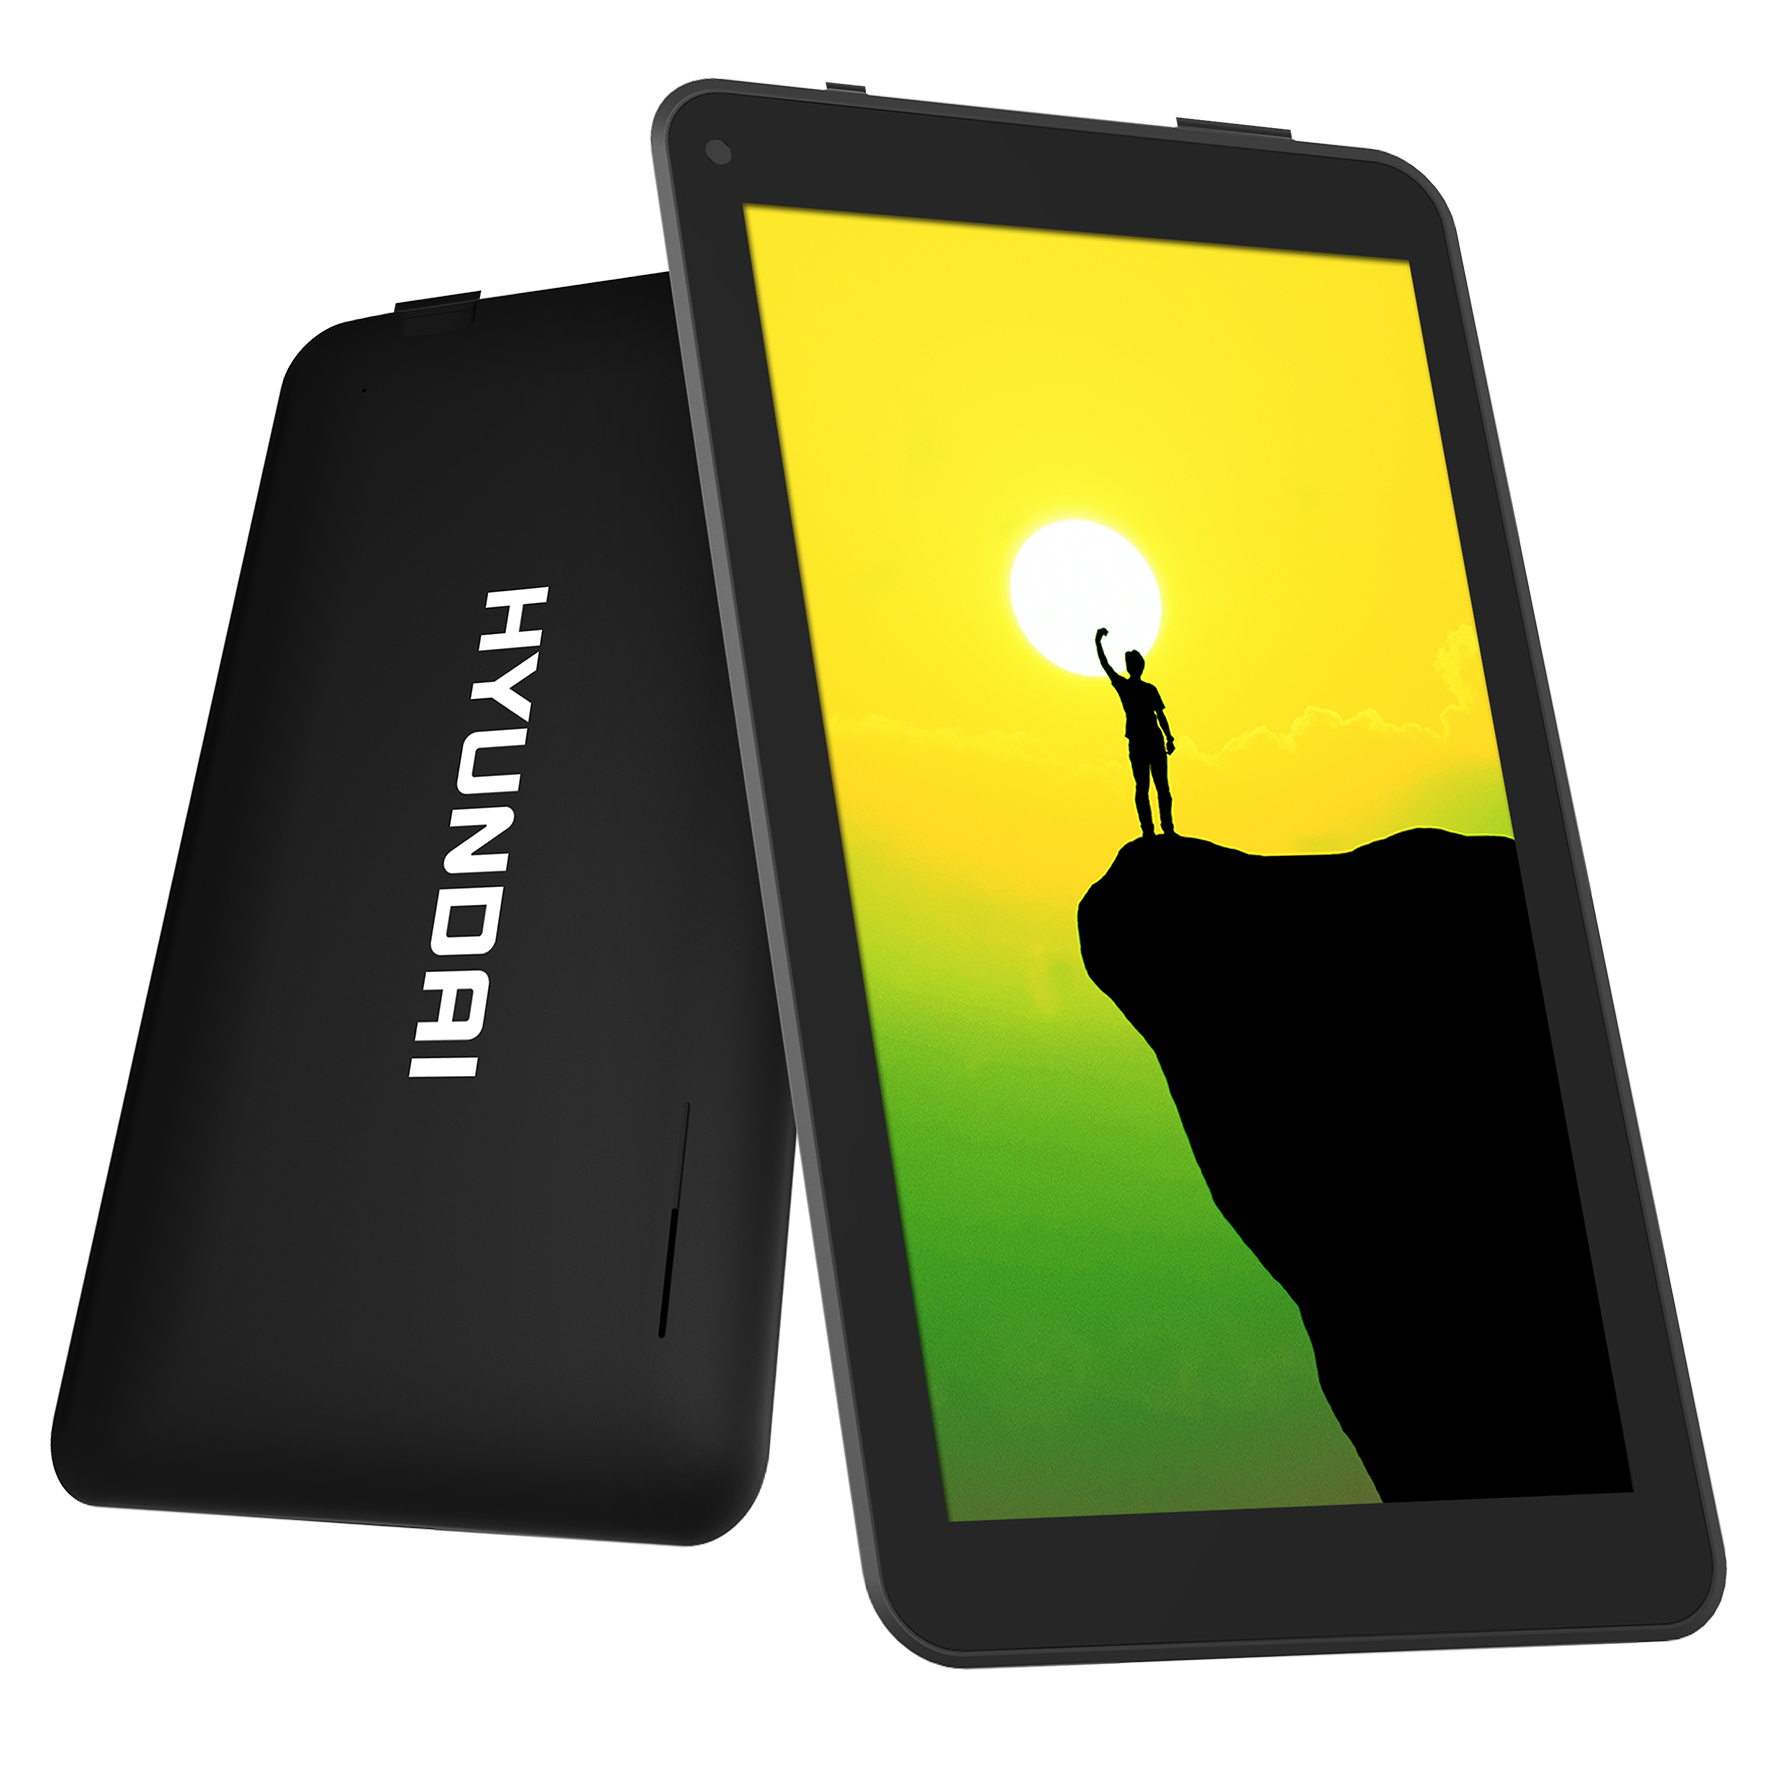 "Hyundai Koral 7W2 7"" Android 7.0 Tablet 8GB with 1024x600 IPS & 2/2MP Camera - Black [HT0702W08A]"